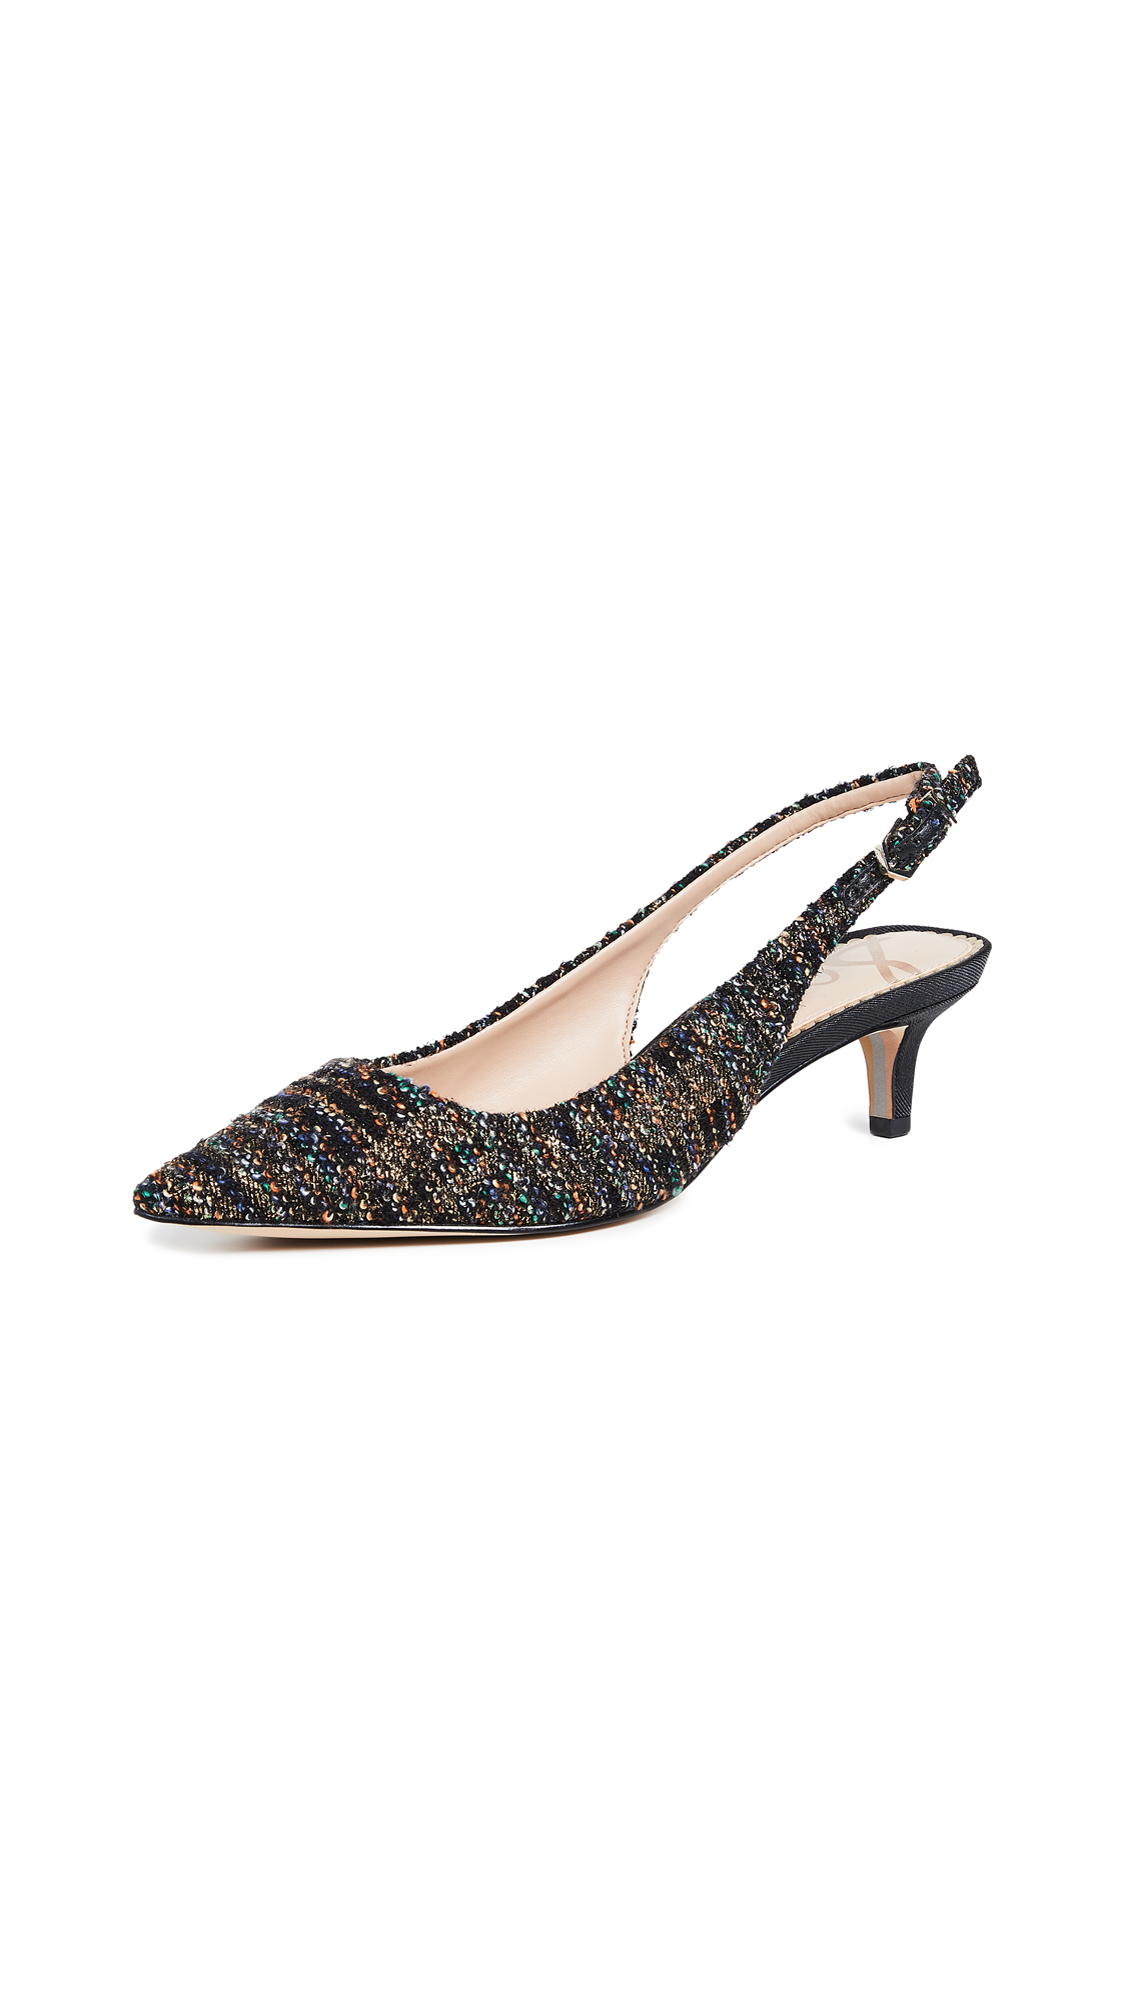 Sam Edelman Ludlow Slingback Pumps - Black/Gold